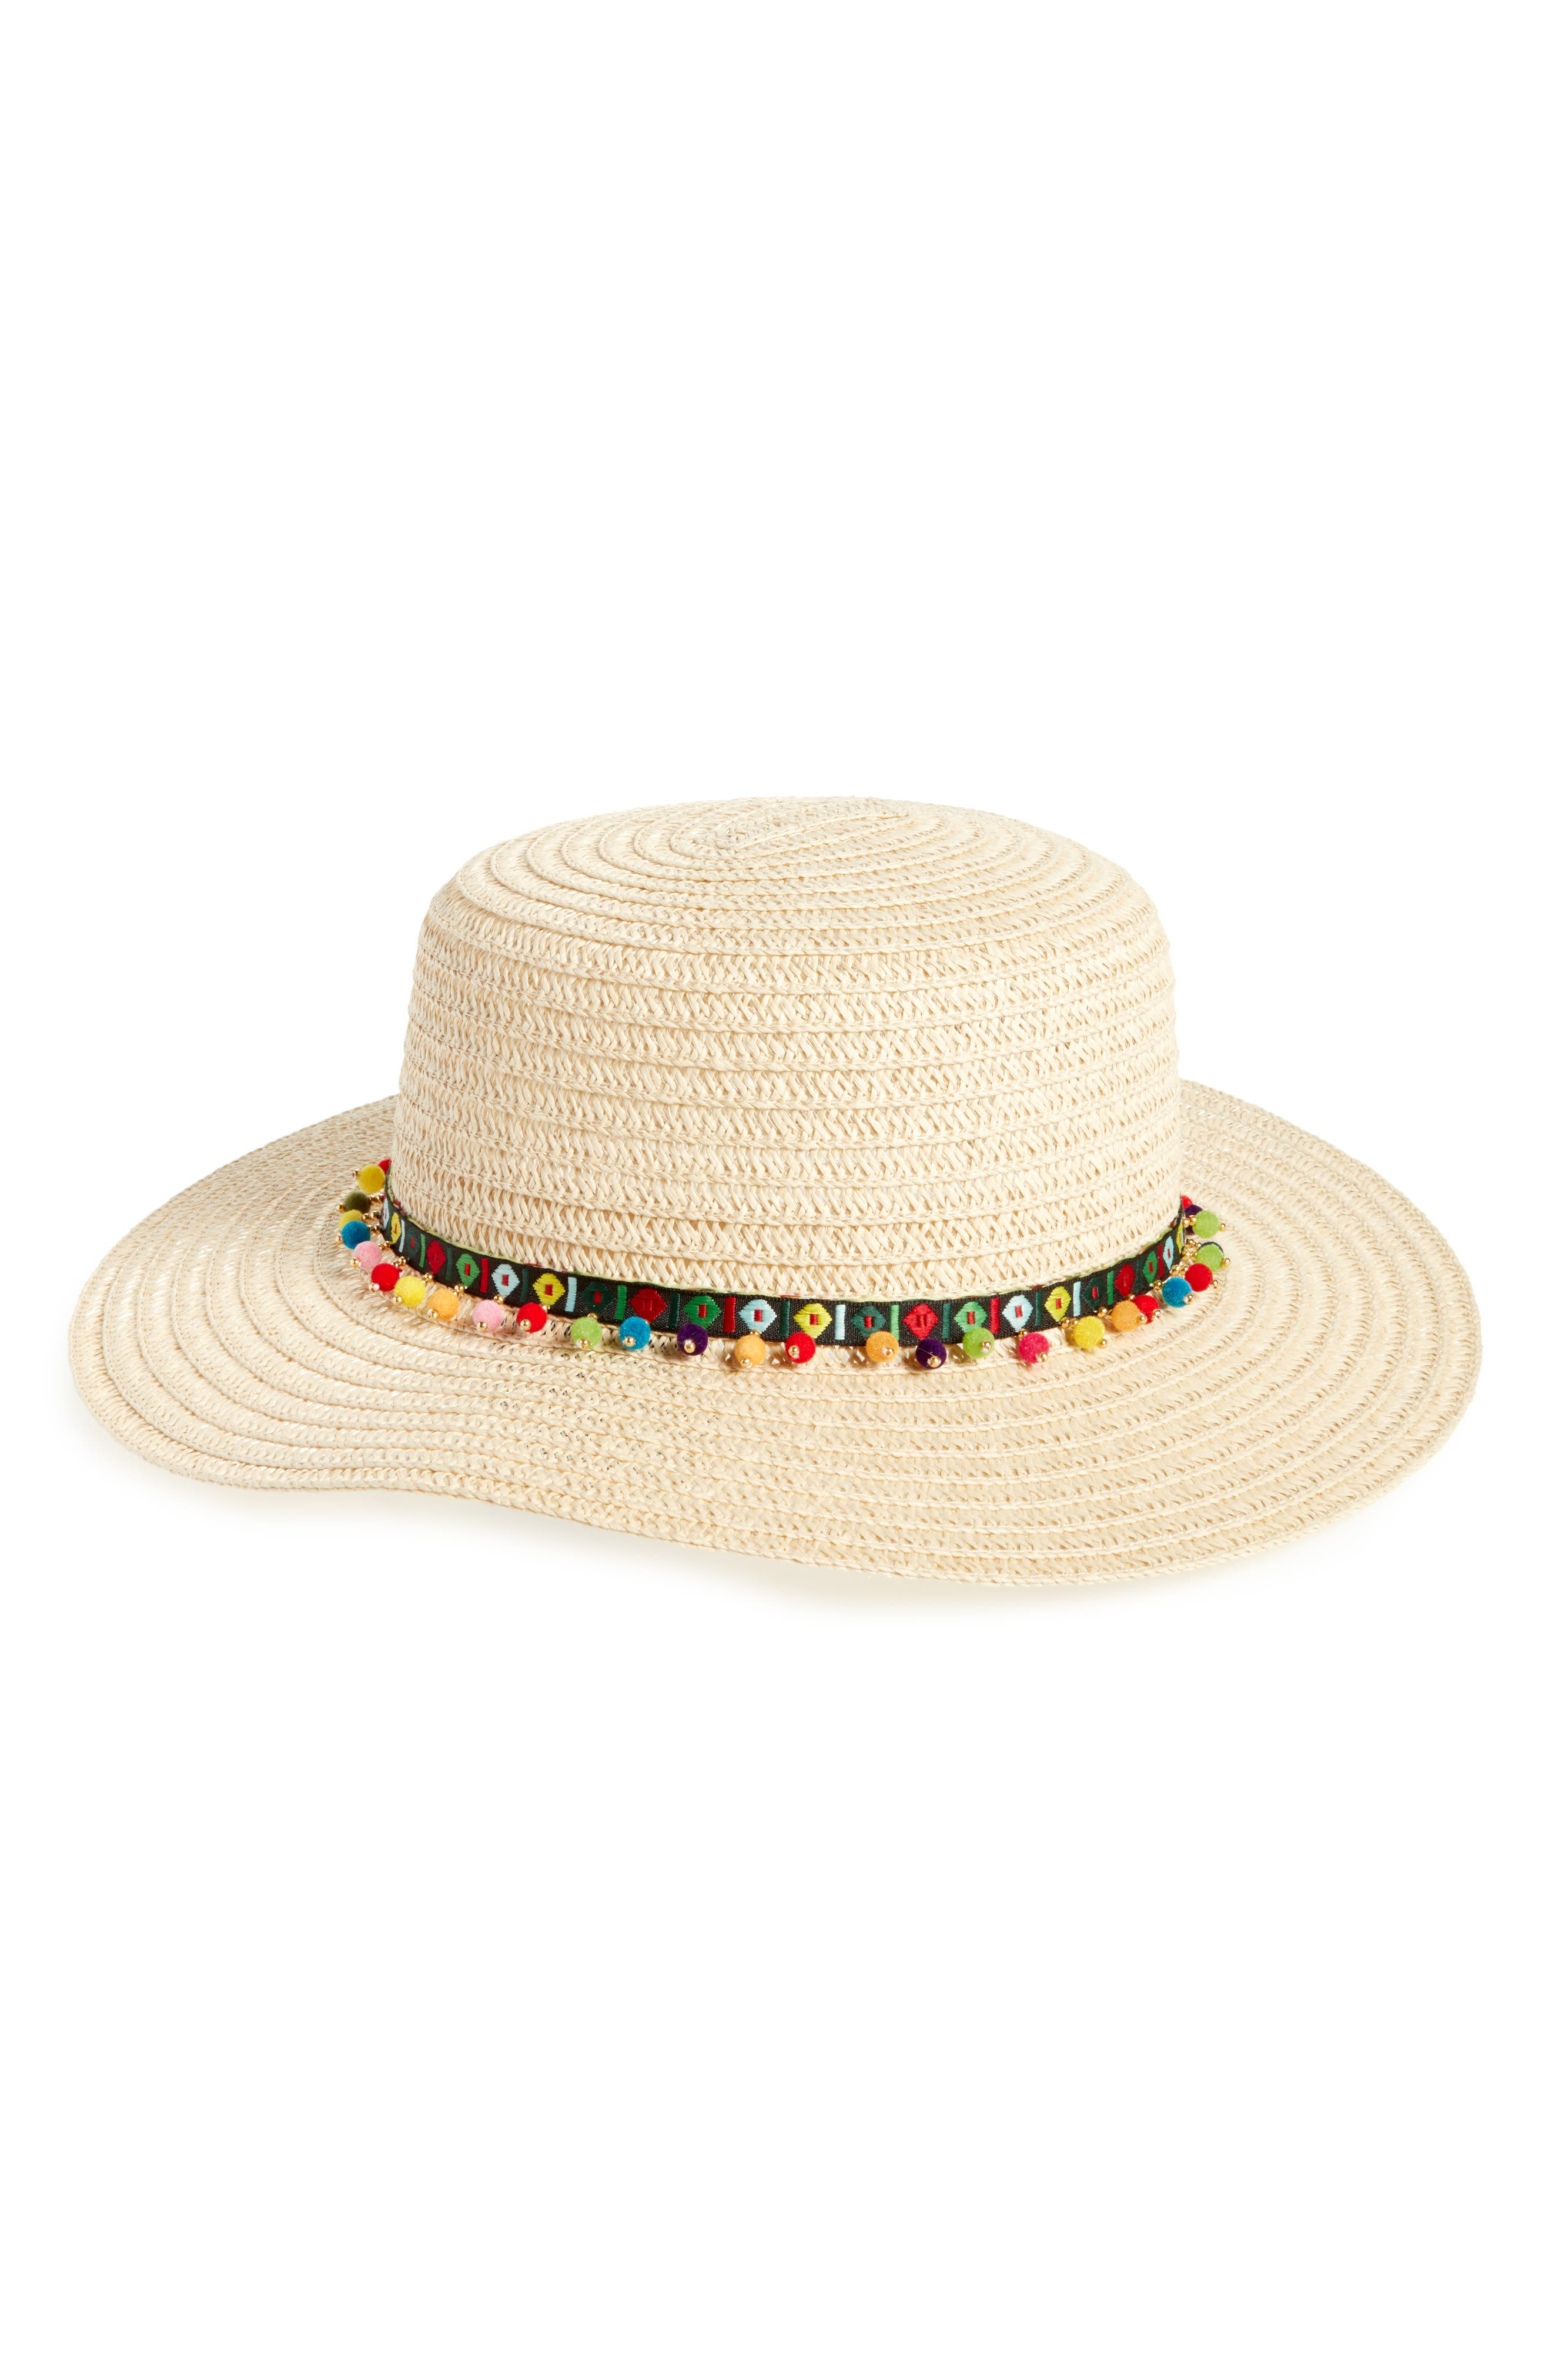 Bead Trim Straw Boater Hat,                             Main thumbnail 1, color,                             Natural Combo